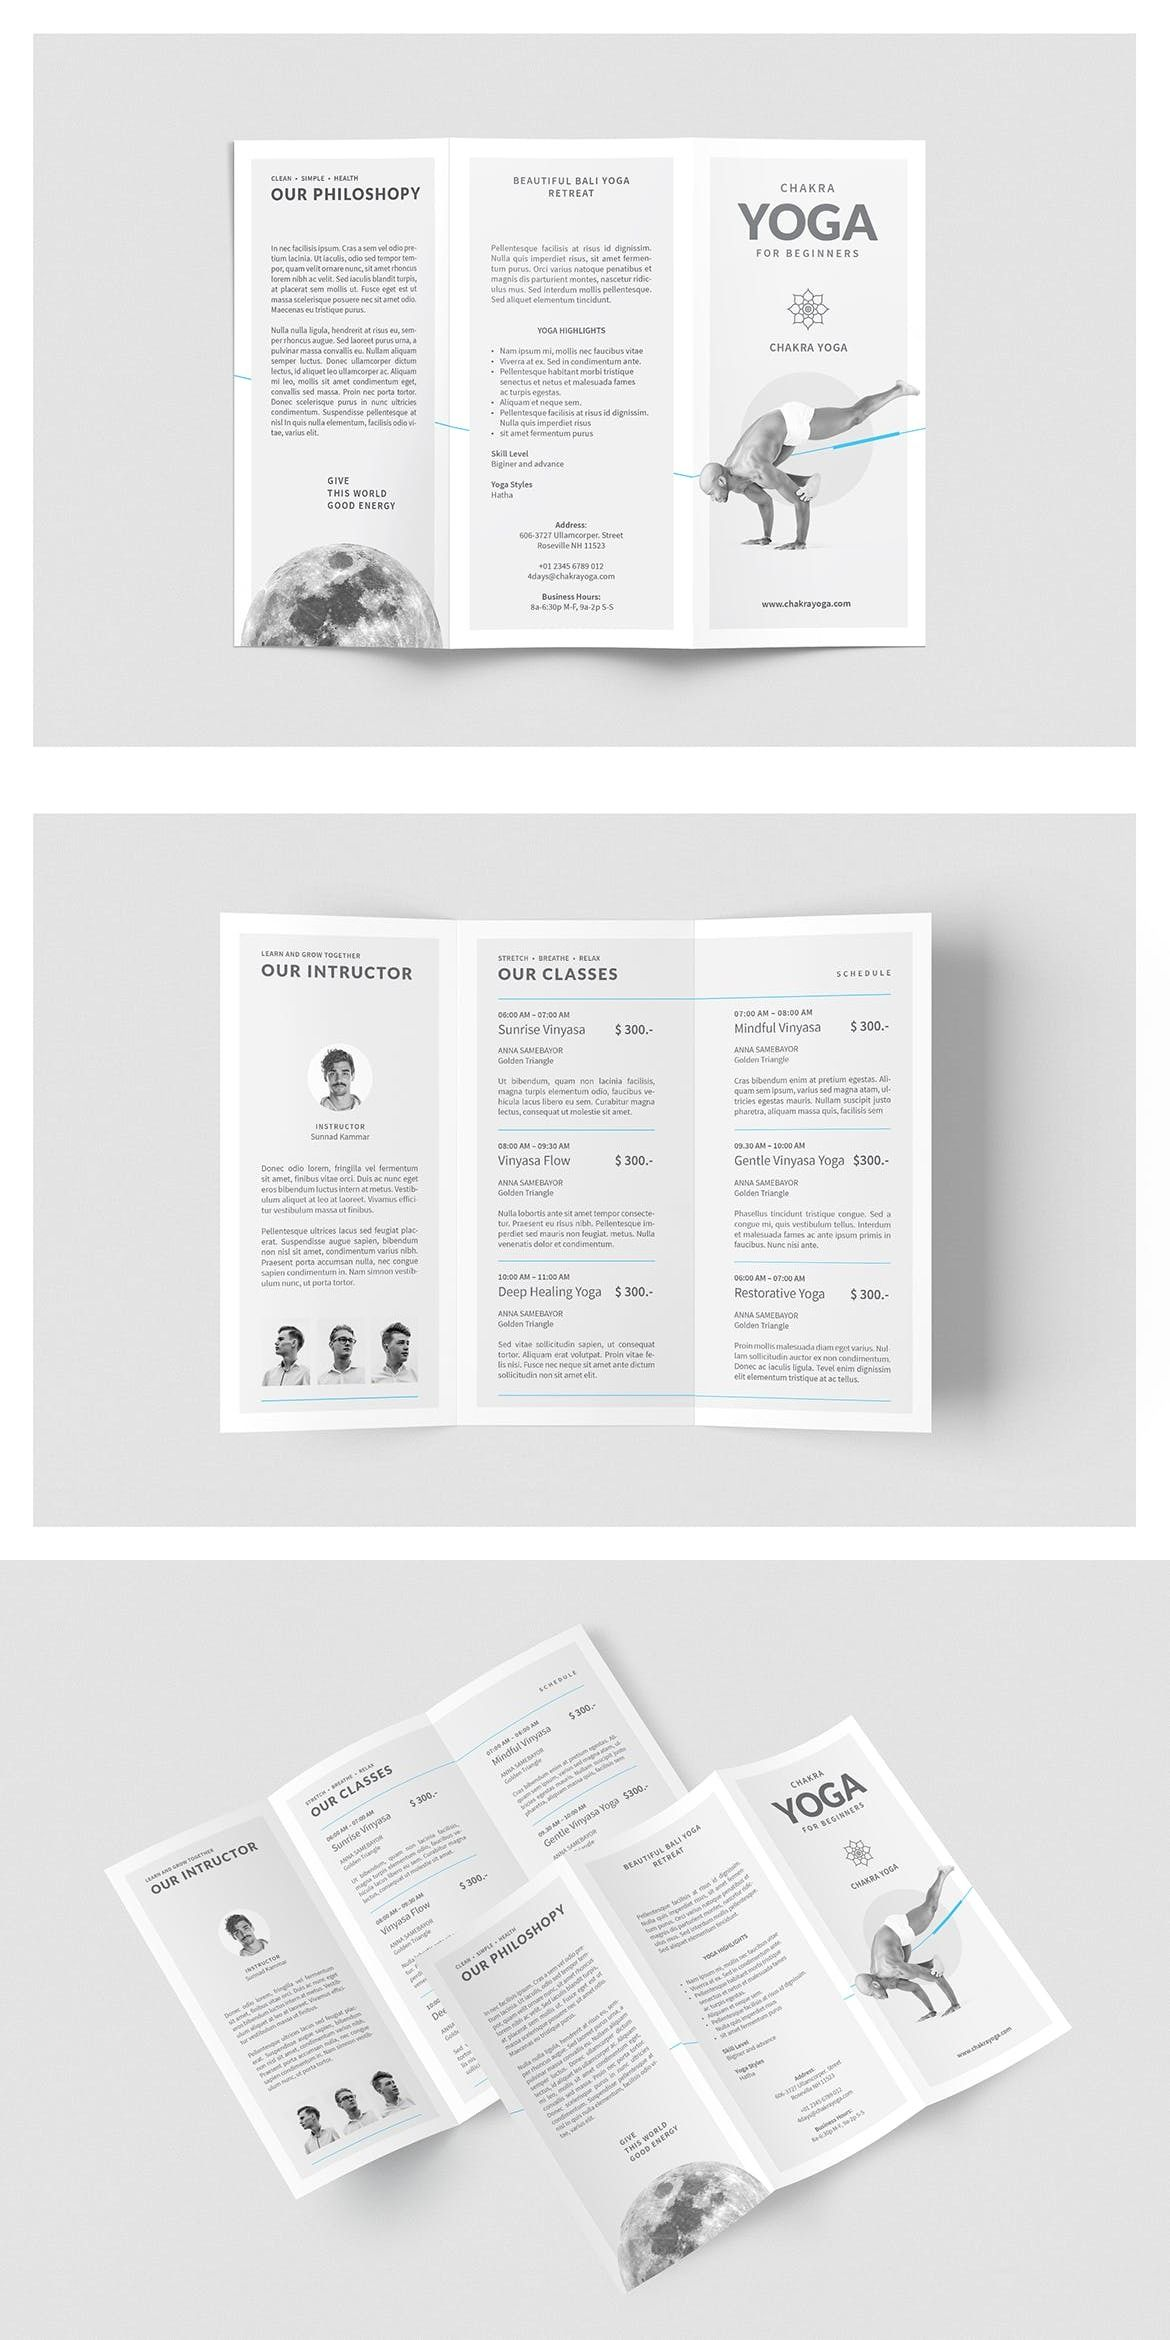 Yoga Classes Brochure by BOXKAYU on Envato Elements